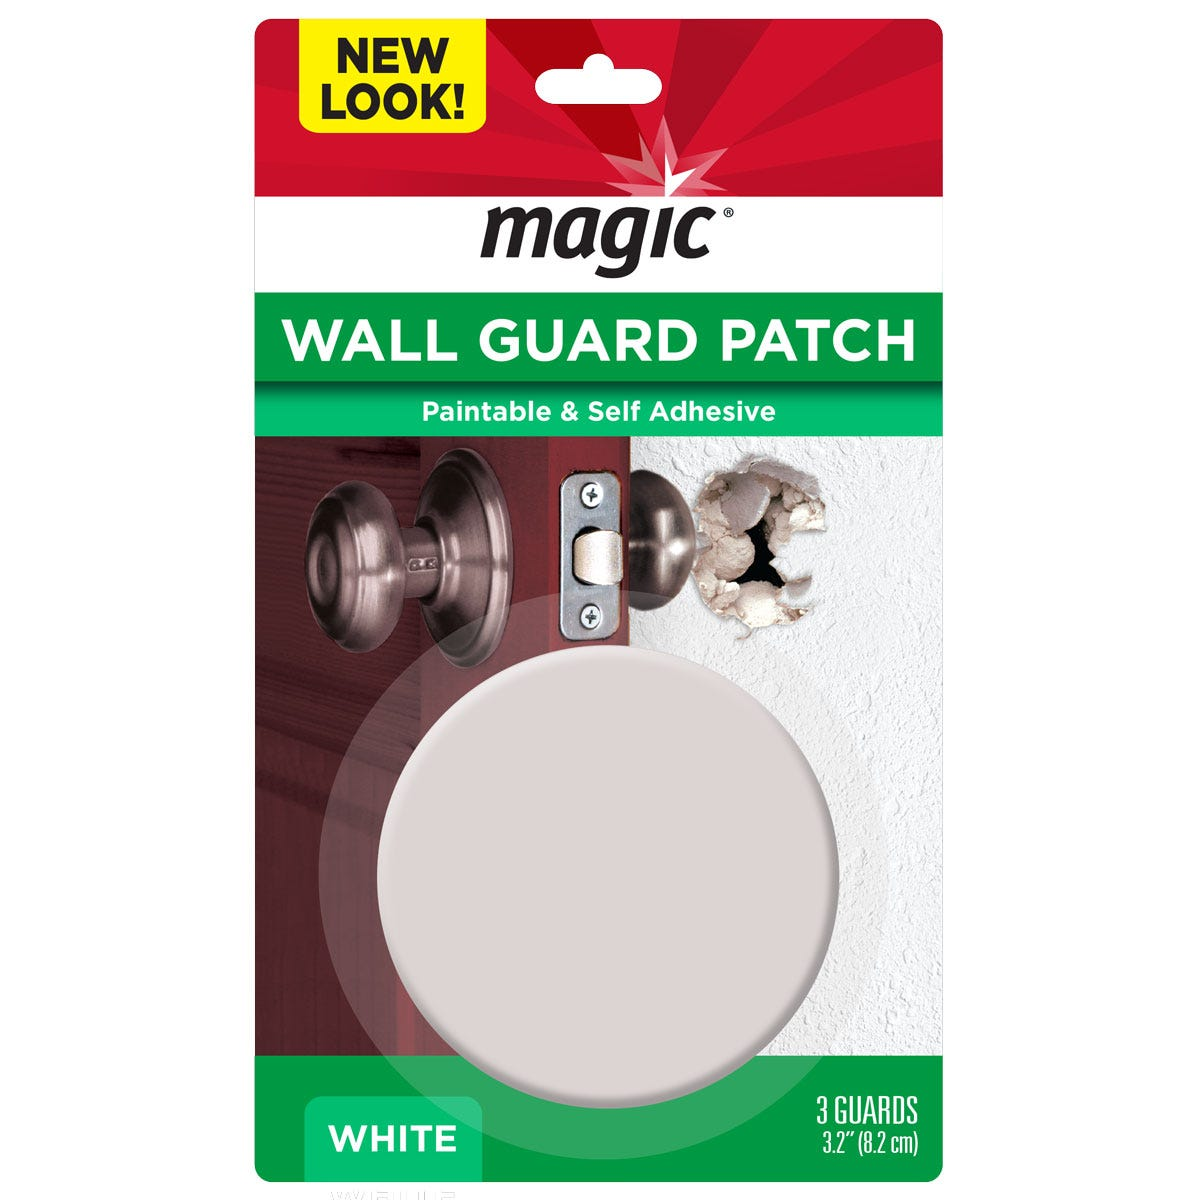 https://googone.com/media/catalog/product/w/a/wall-hole-patch_front.jpg